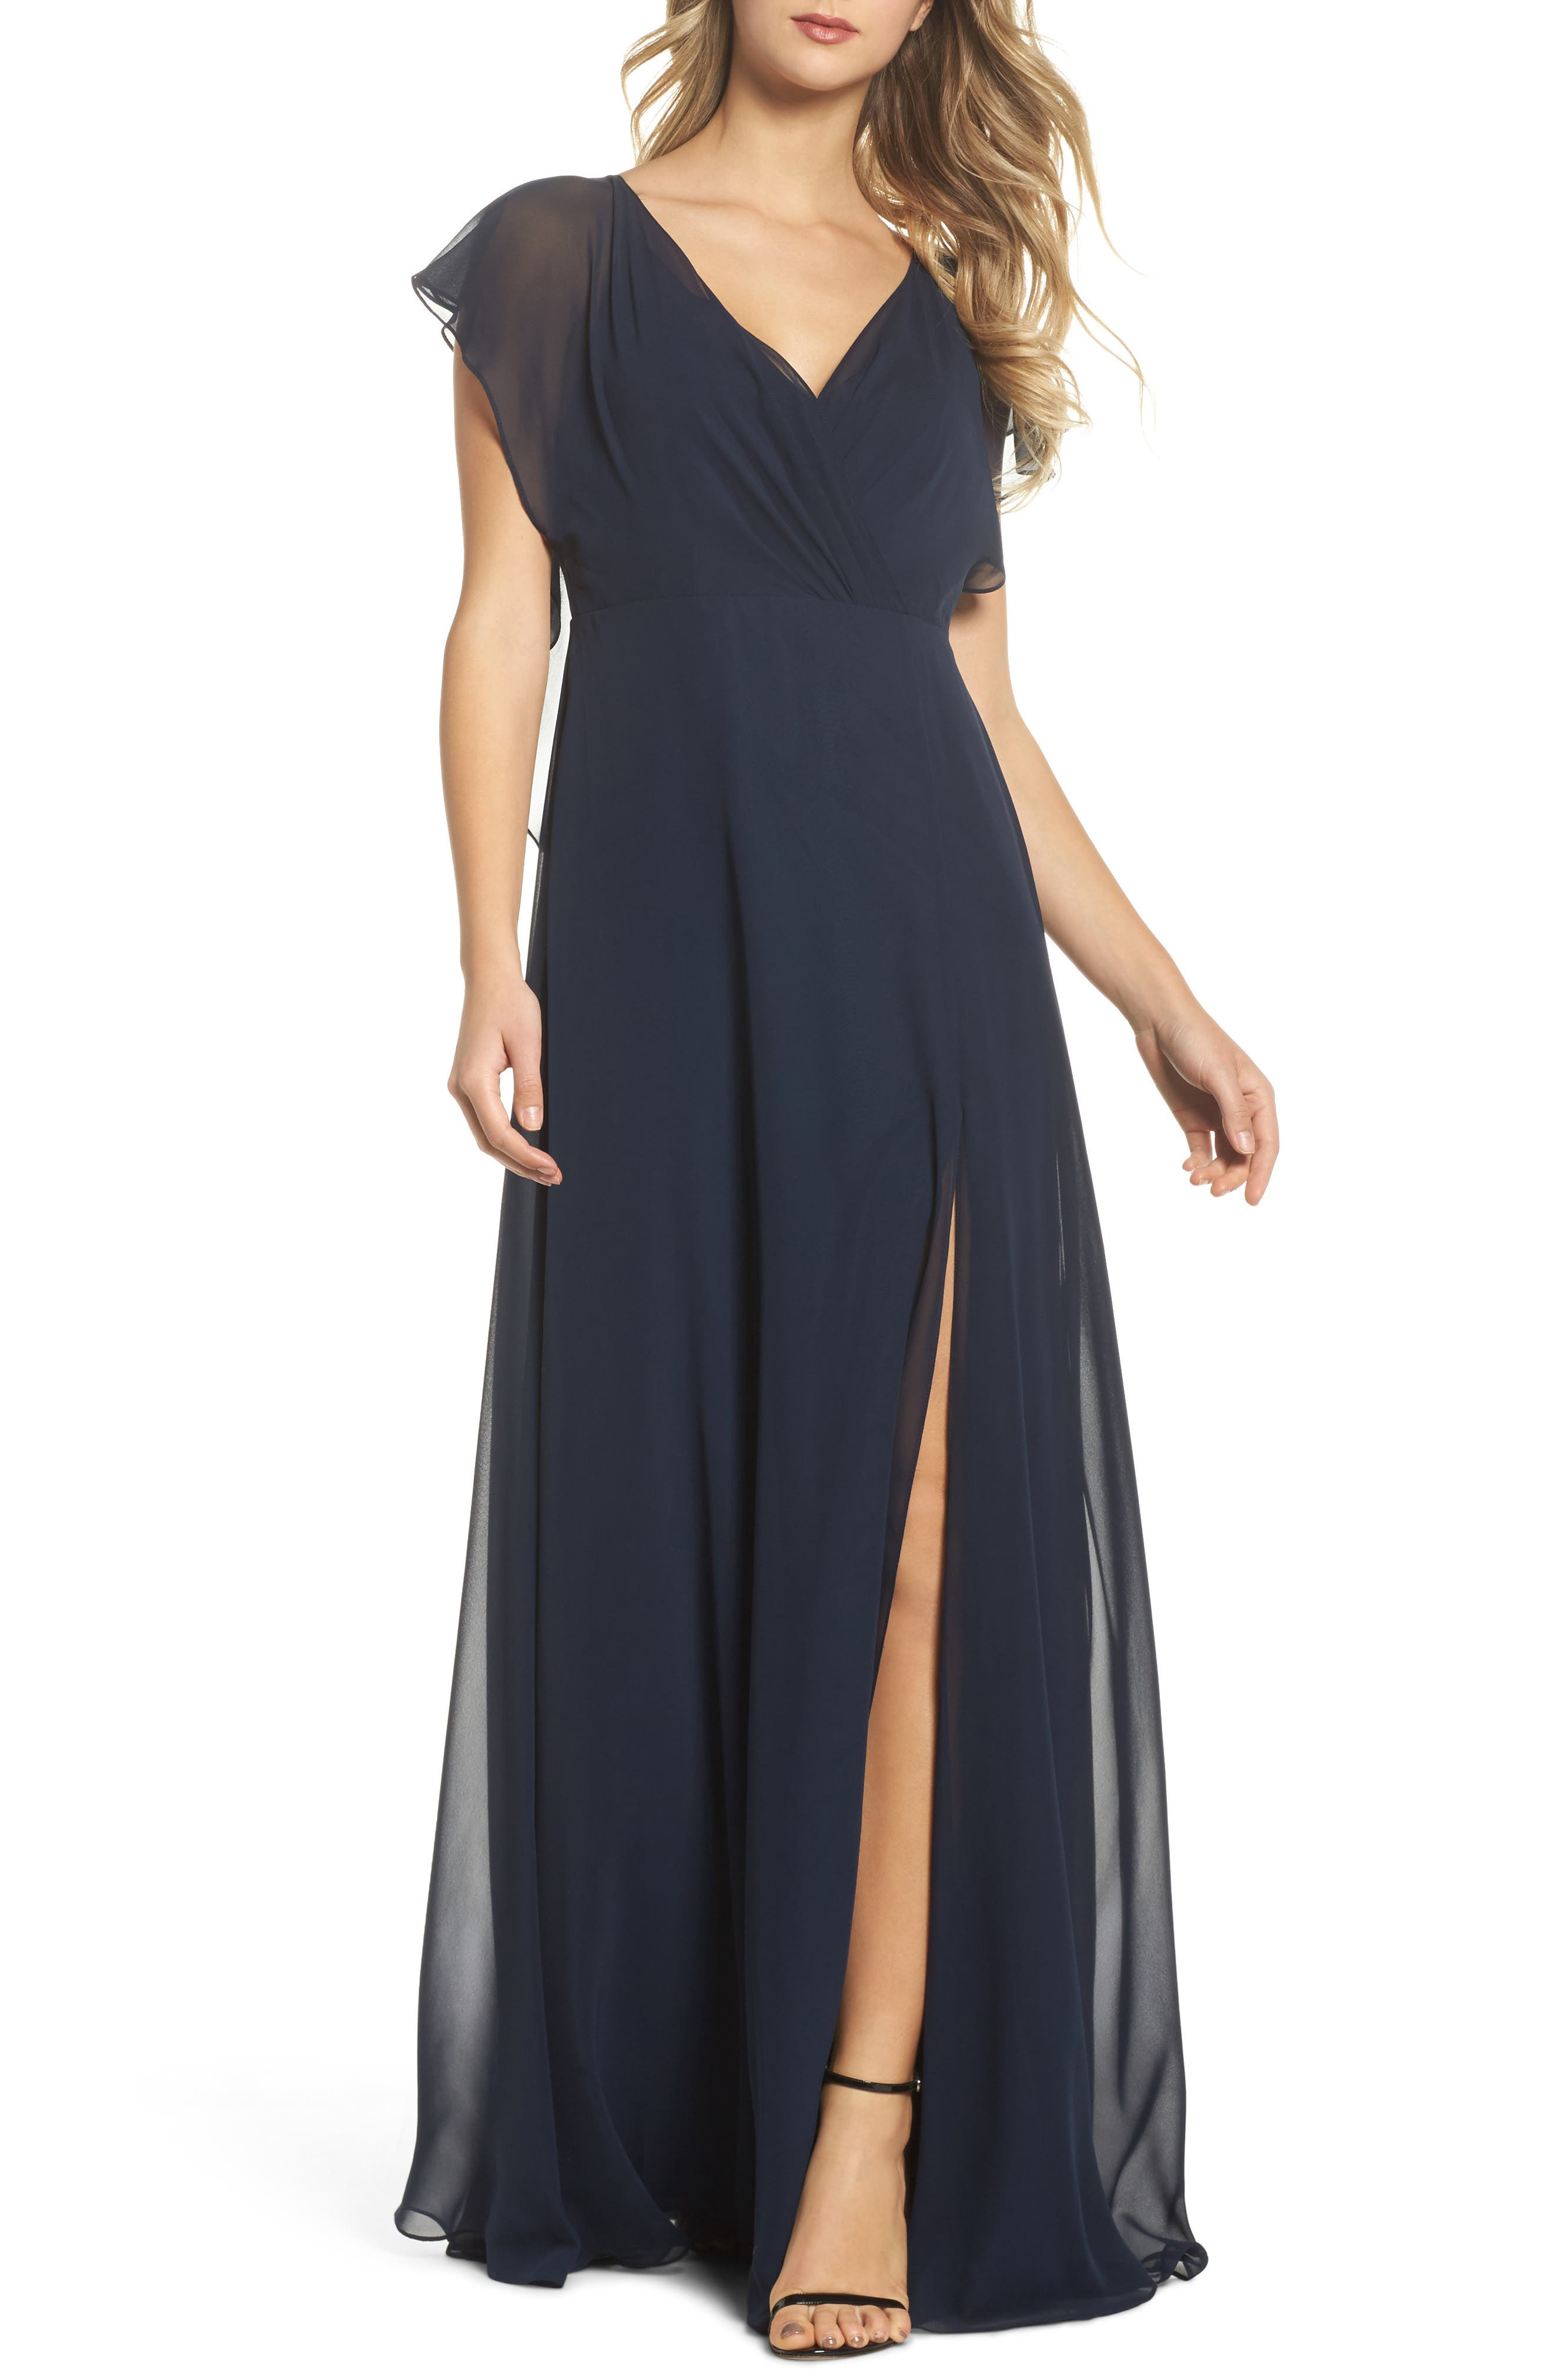 Alanna Open Back Chiffon Gown,                             Main thumbnail 1, color,                             NAVY